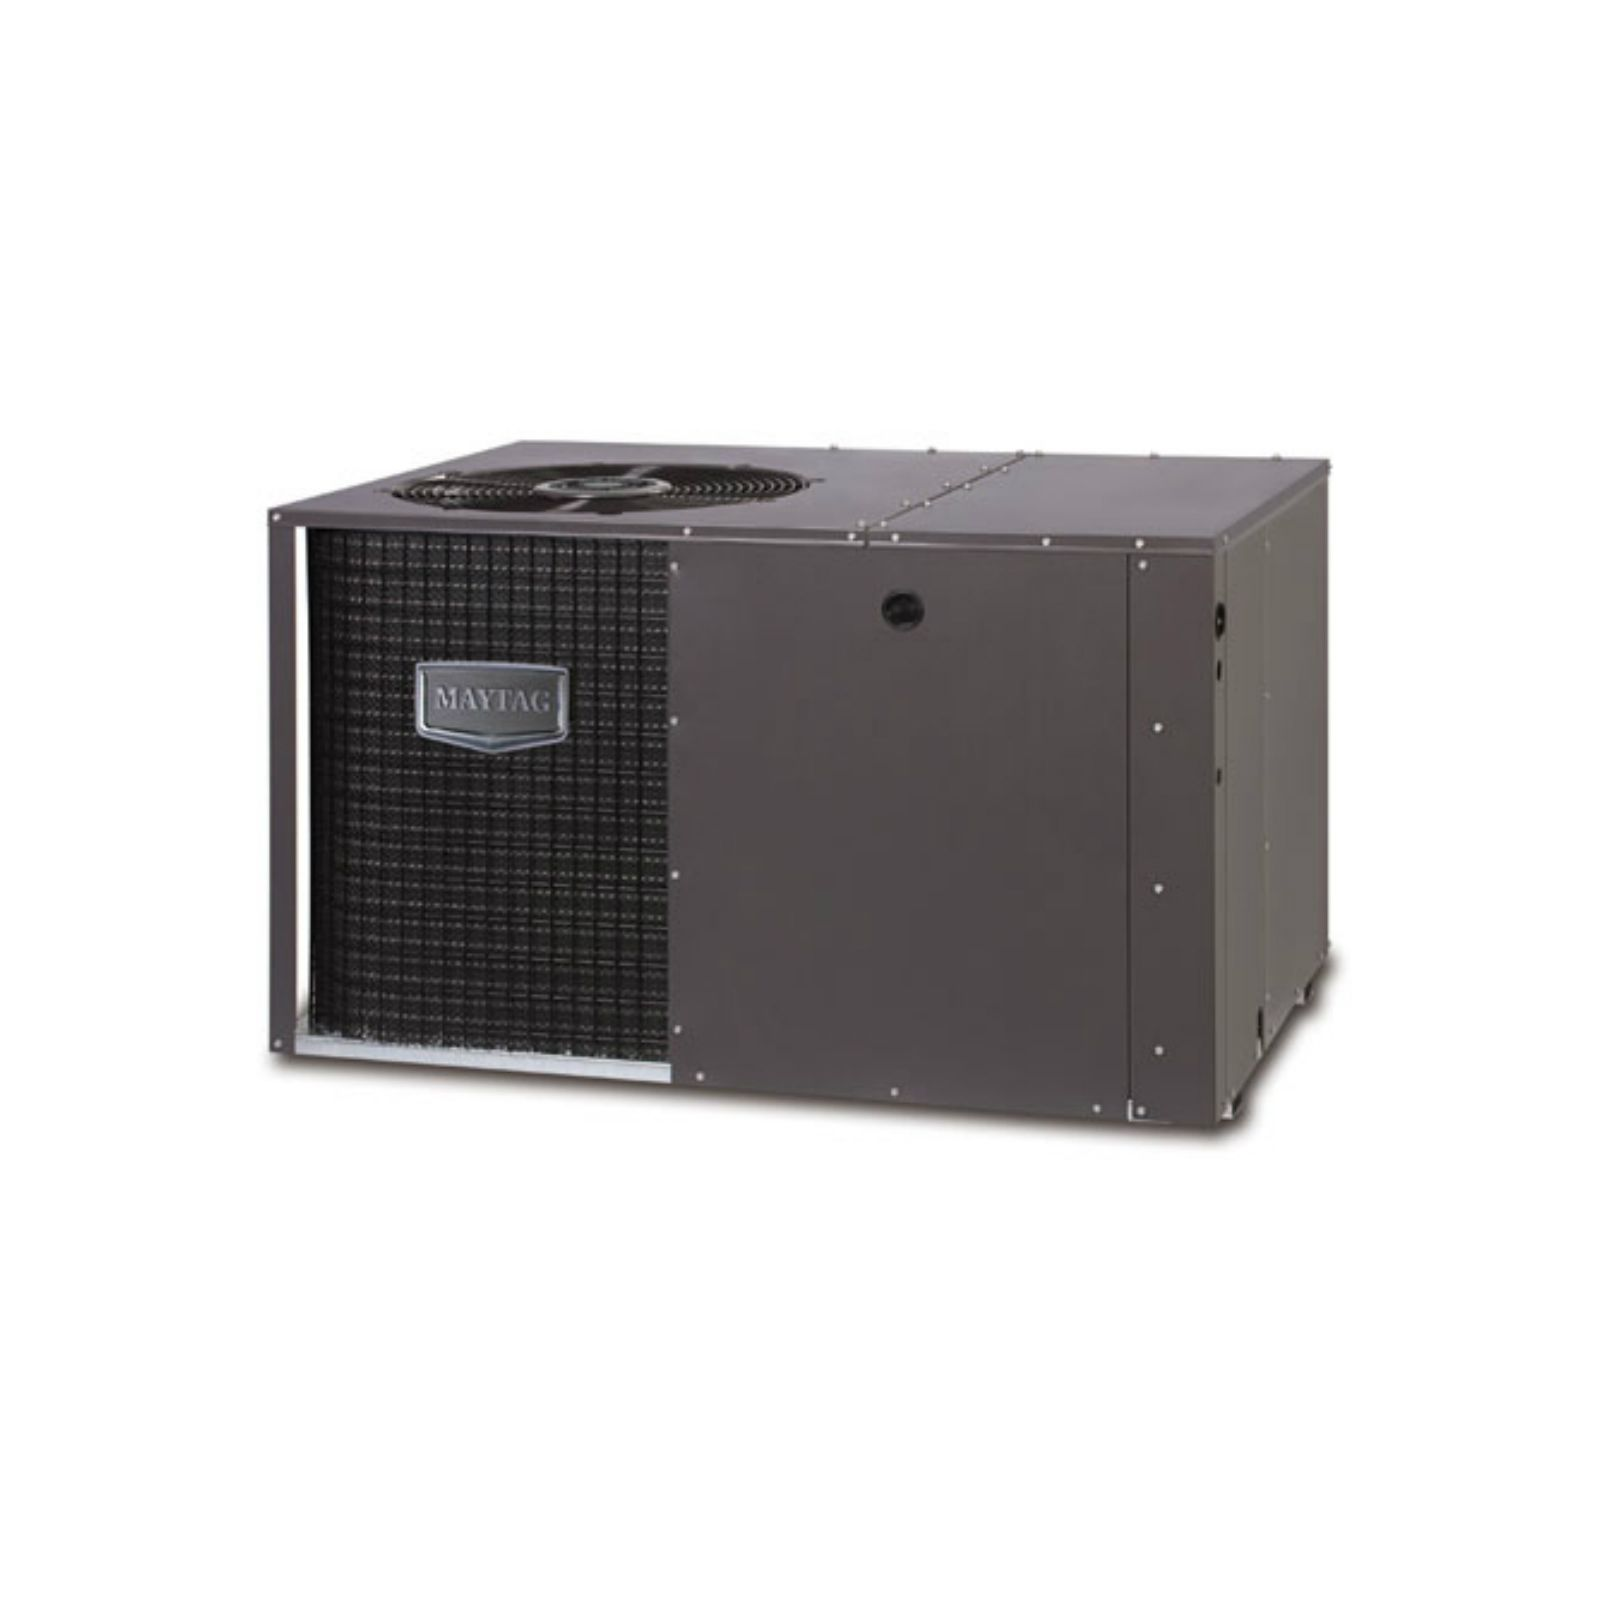 Maytag 920591PA - PPH2RFX60KA - 5 Ton 15 SEER M1200 High Efficiency Single Packaged Heat Pump, R410A